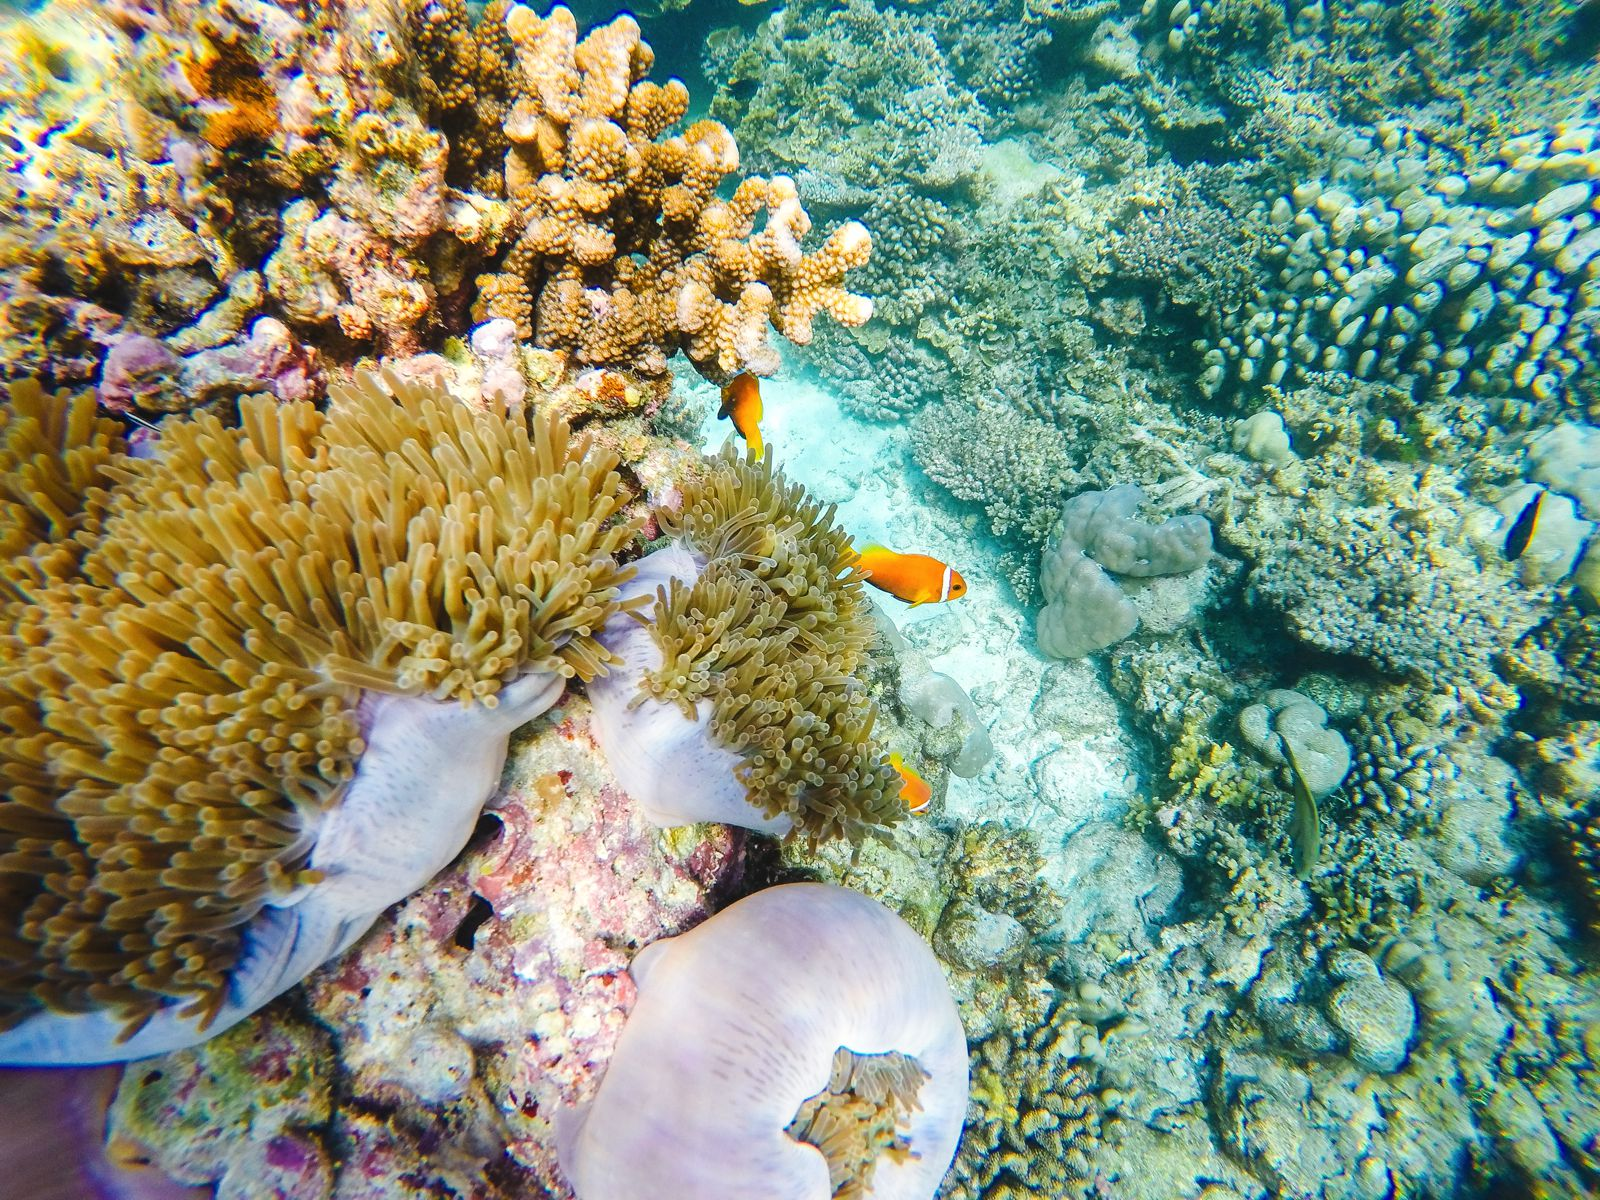 Swimming With Sharks, Turtles, Clownfish And Stingrays In The Maldives (23)